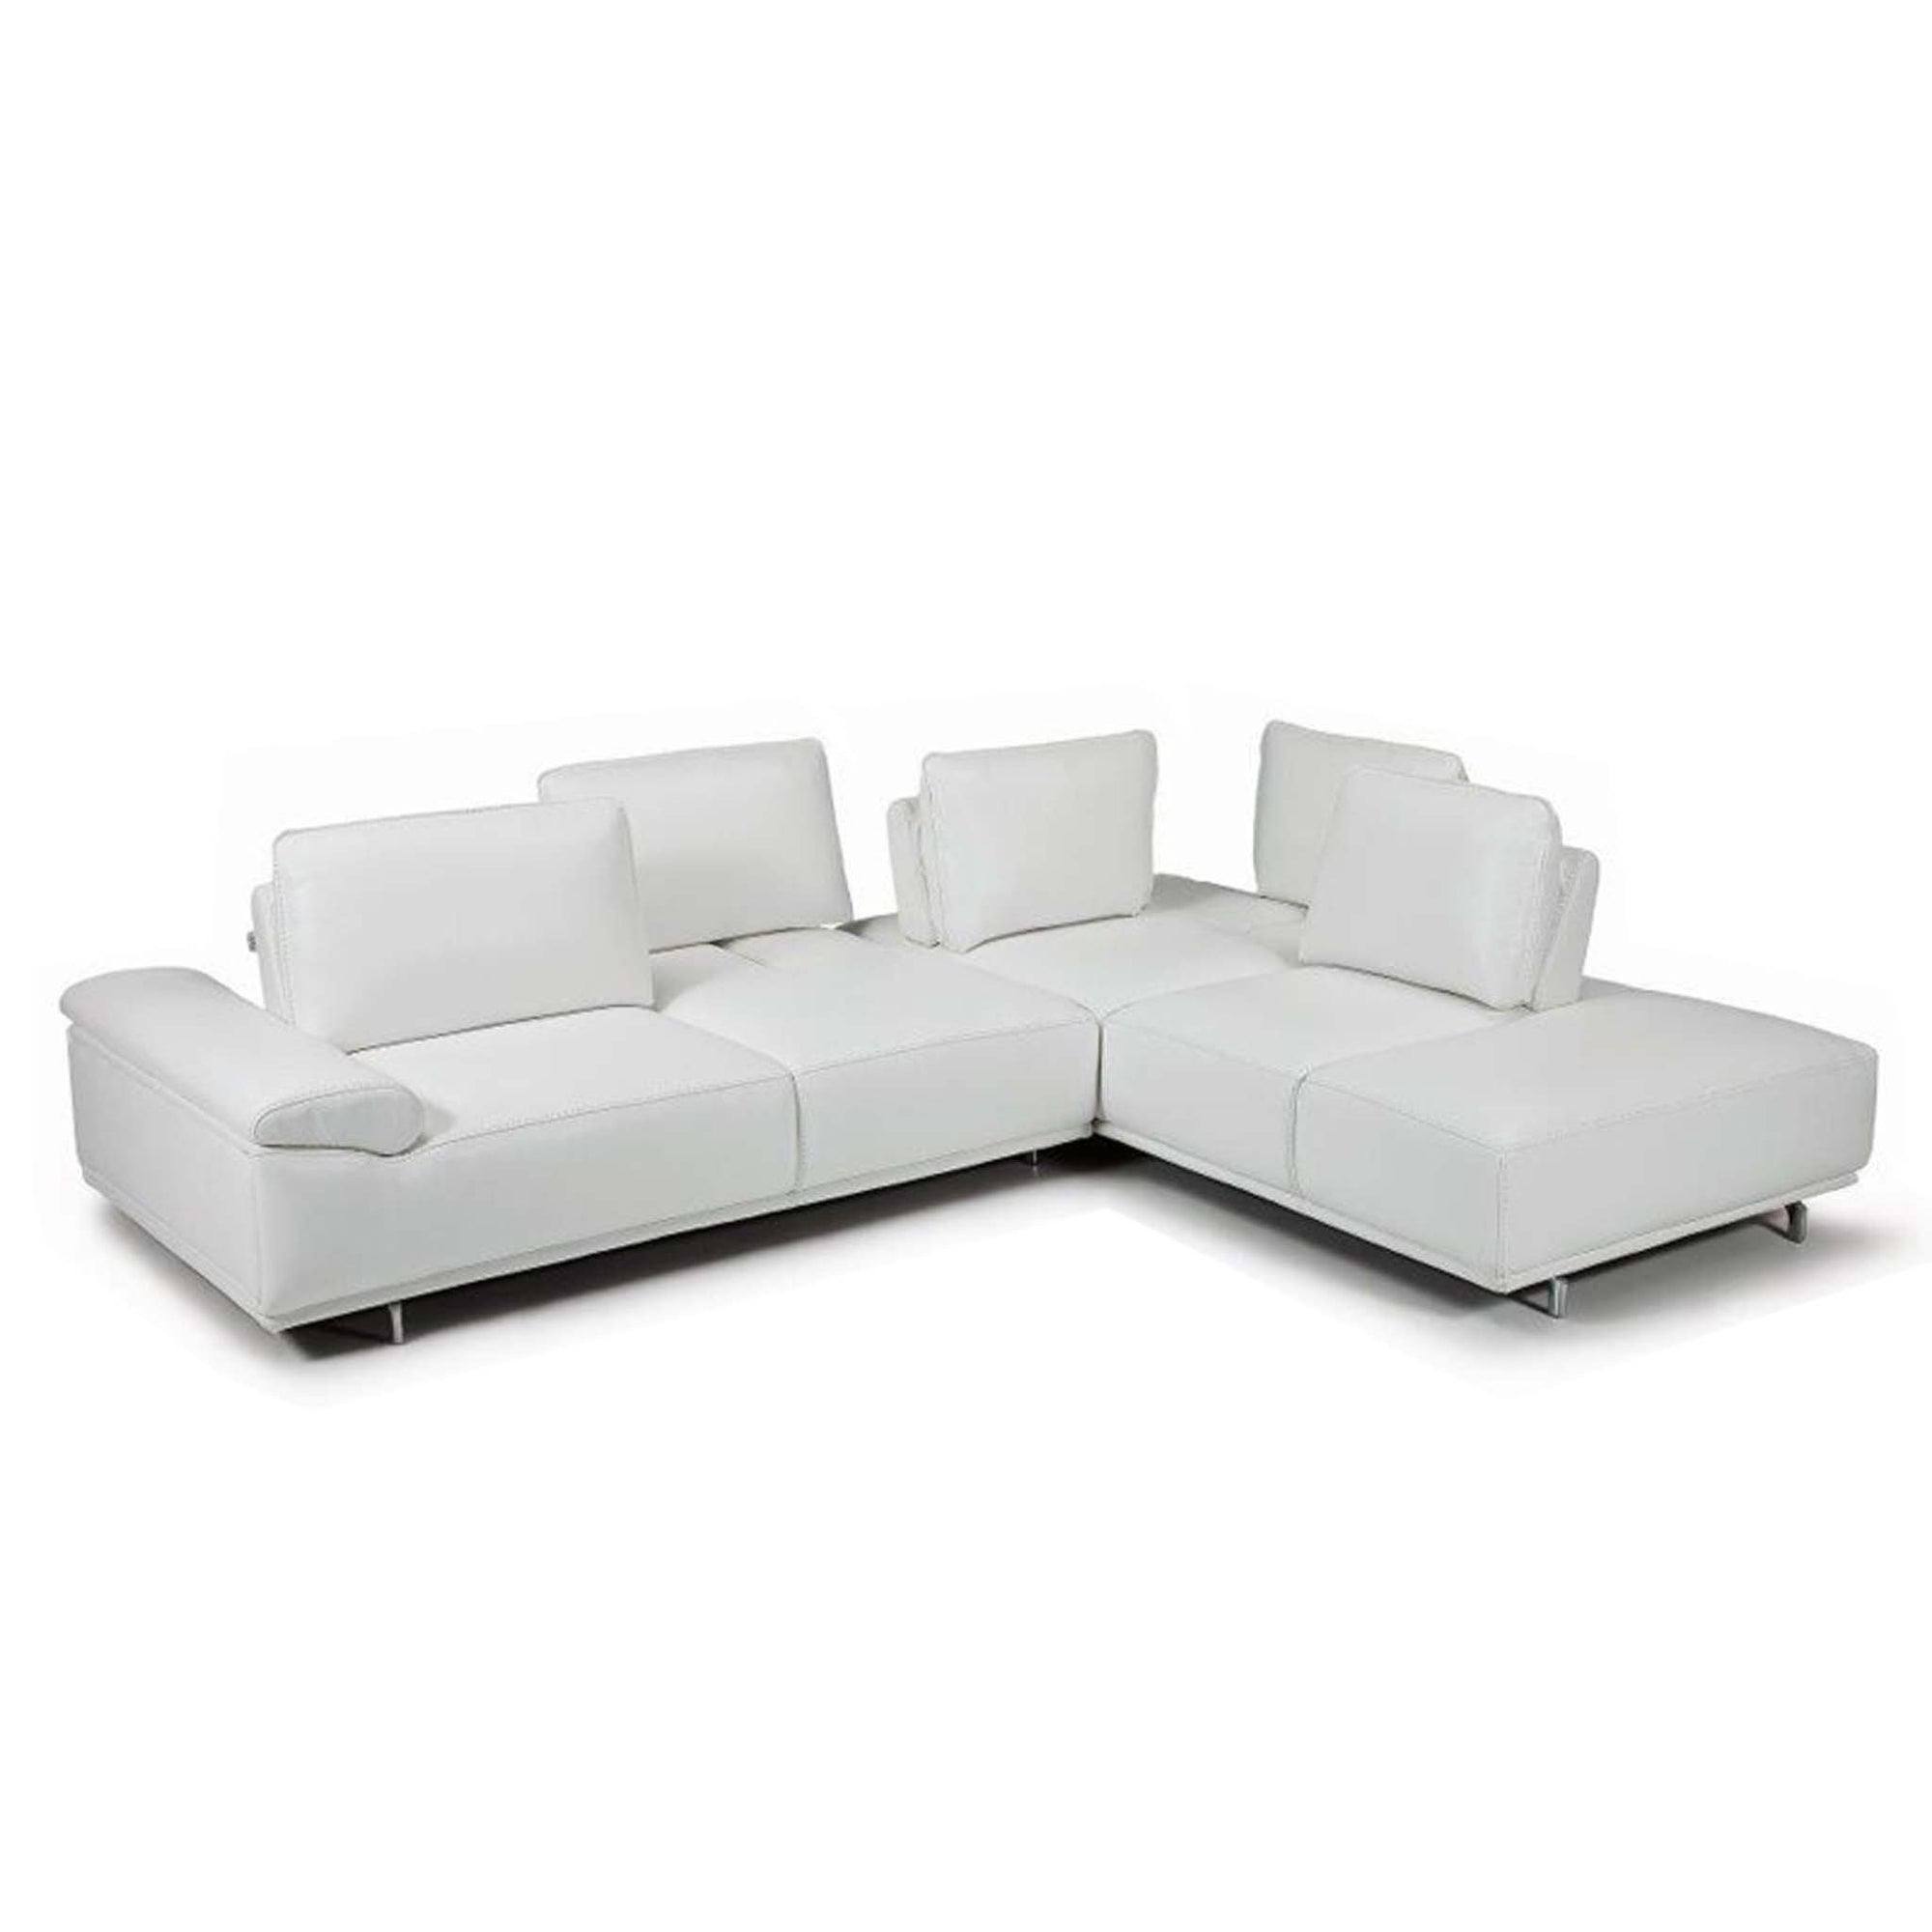 Bellini-Roxanne Right Hand Facing Sectional #35612 With Adjustable Back & Arm Cushions-Sectionals-MODTEMPO